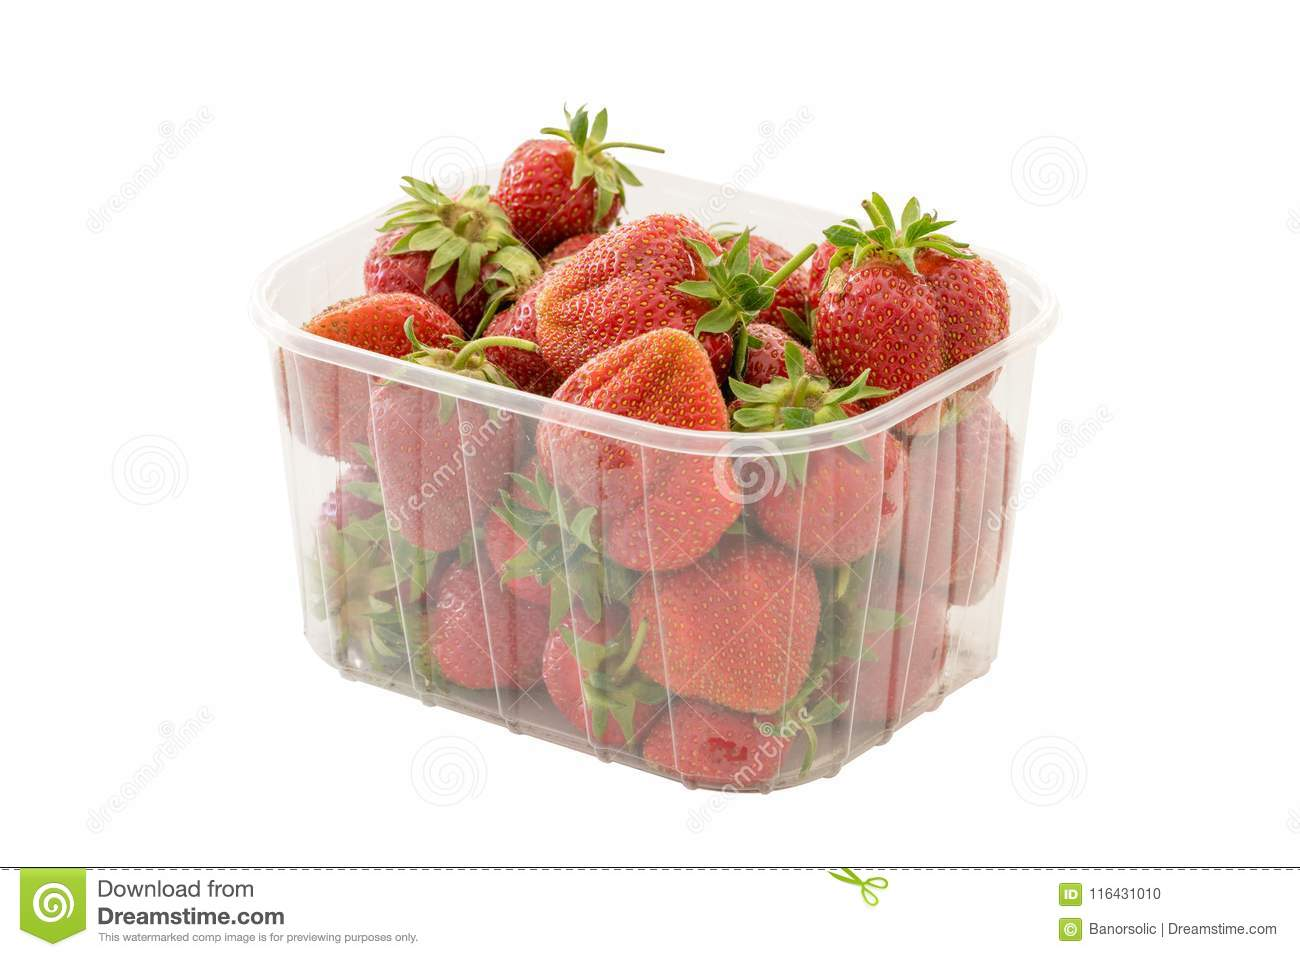 Fresh ripe organic strawberries in transparent plastic retail package. Isolated on white background with clipping path.